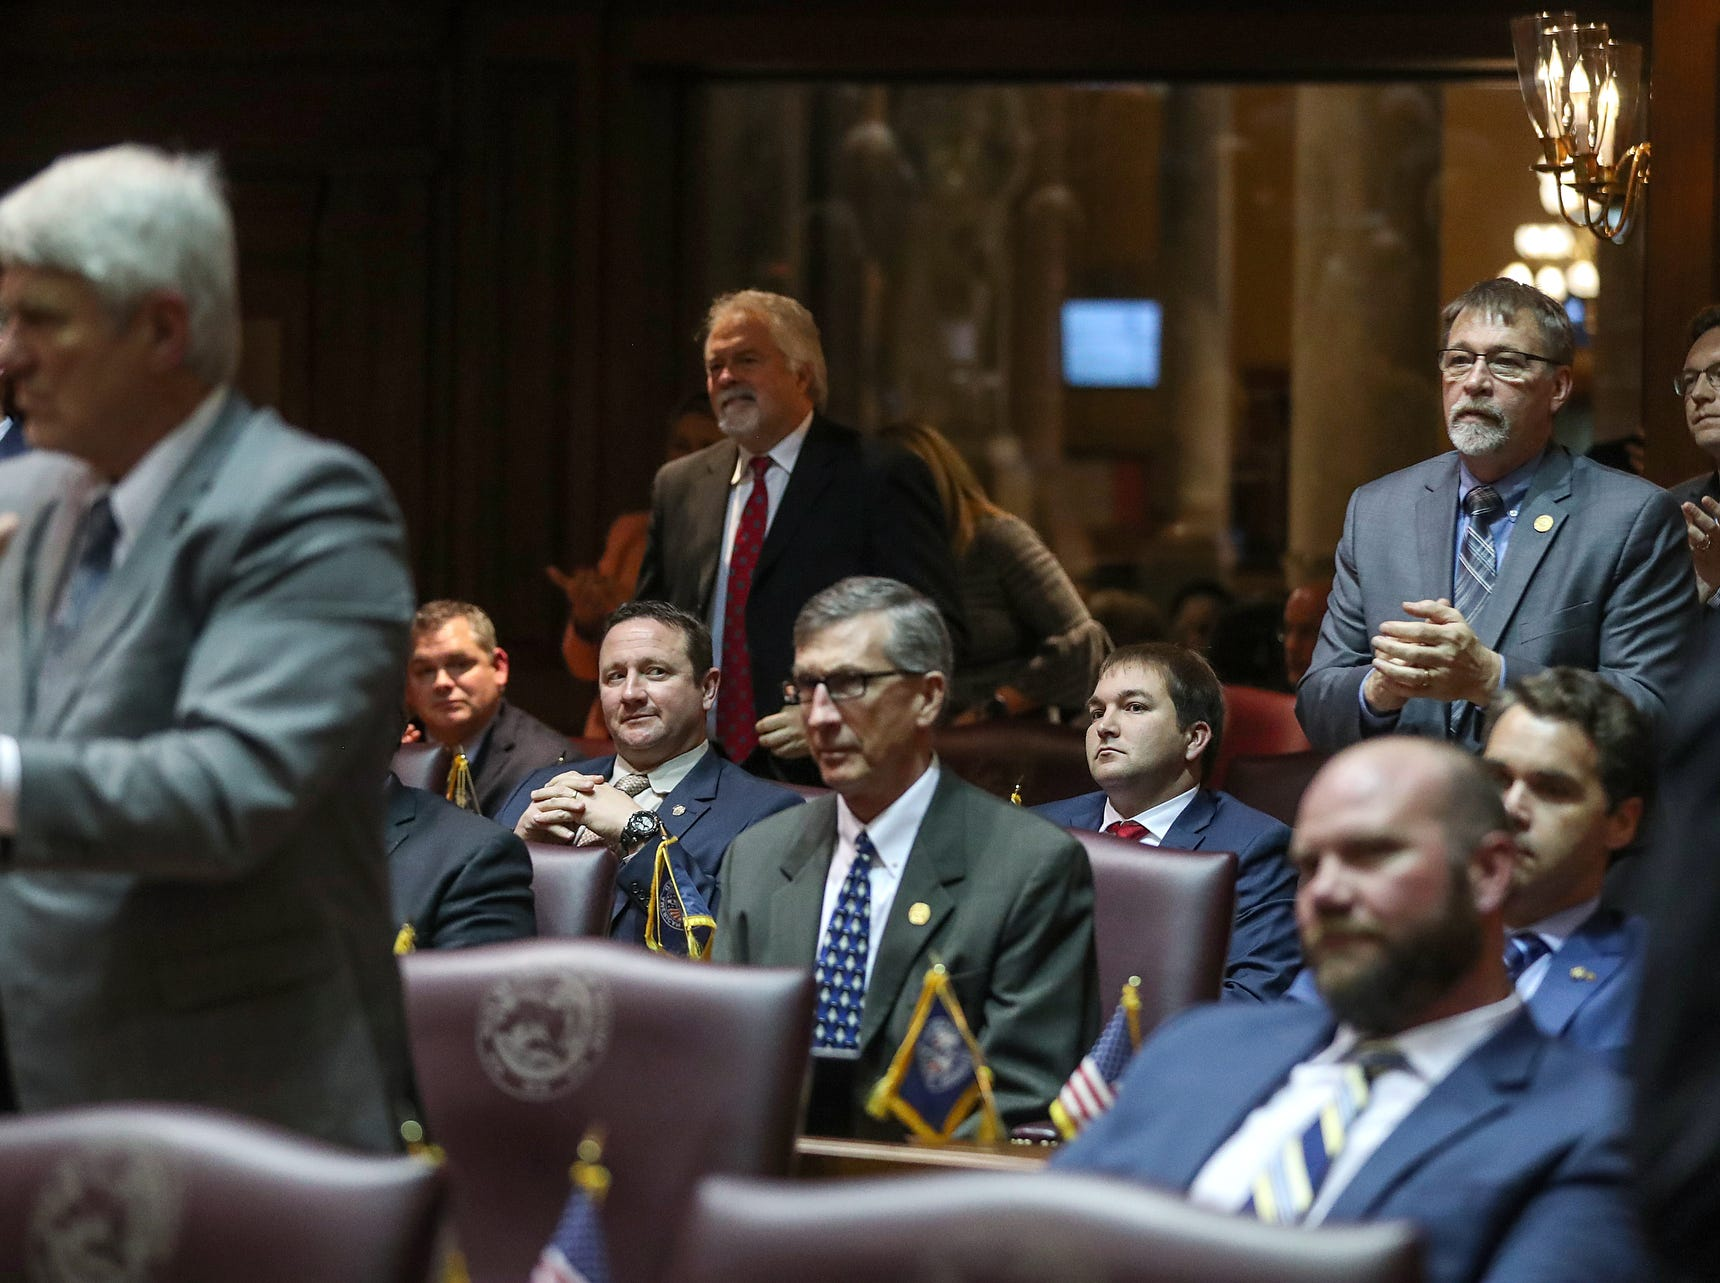 Members of the Indiana General assembly react to Gov. Eric Holcomb's remarks supporting bias crimes legislation, during his State of the State address at the Indiana Statehouse in Indianapolis, Tuesday, Jan. 15, 2019.